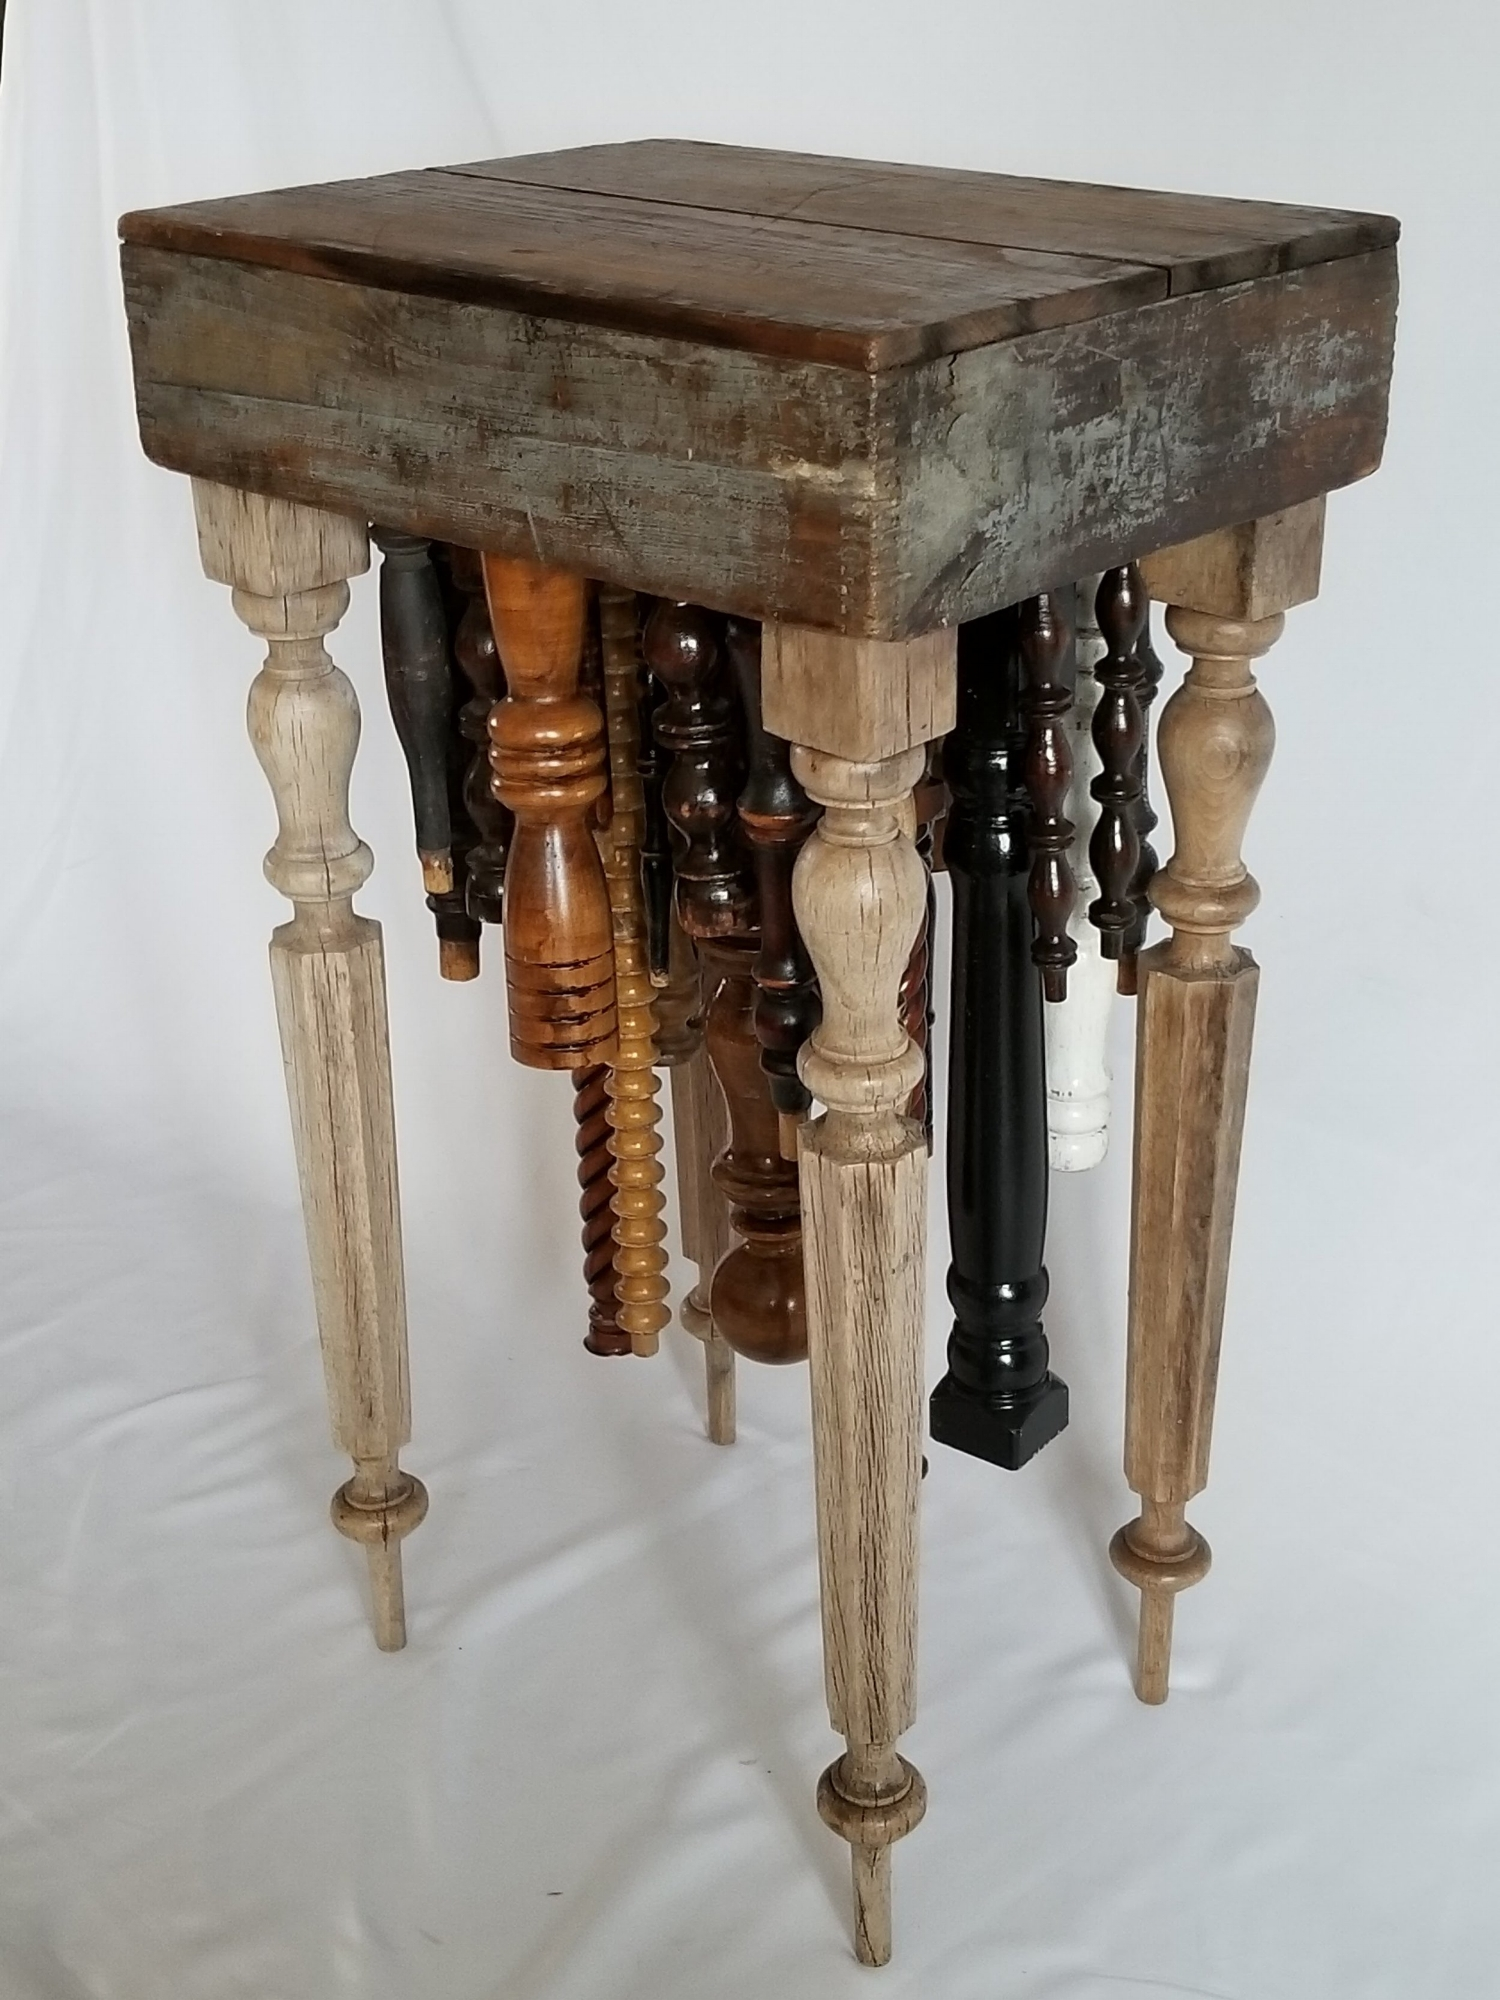 Spindle End Table - Key West I